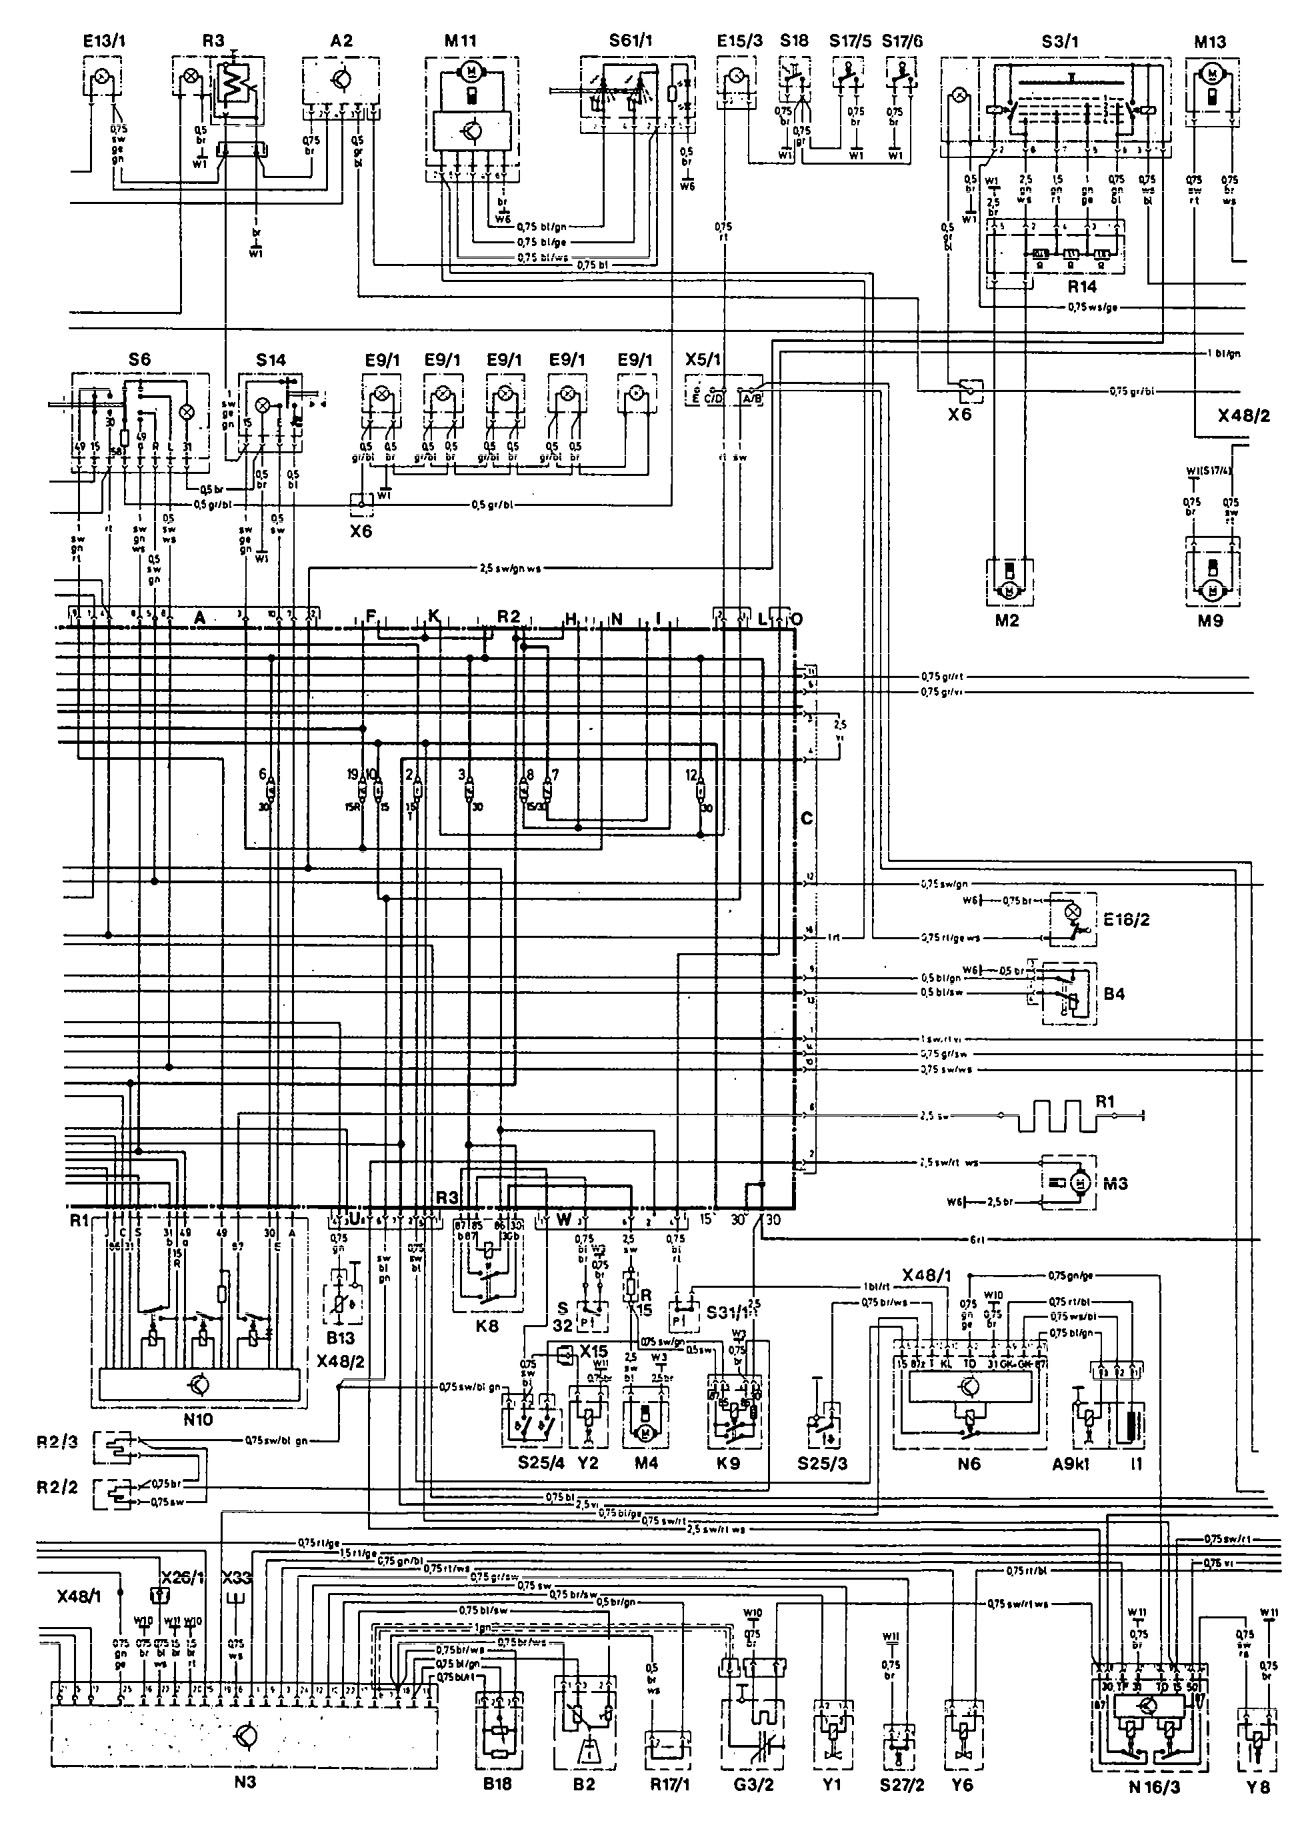 hight resolution of 1992 mercedes benz e190 fuse box car wiring diagram wire data schema u2022 rh kiymik co